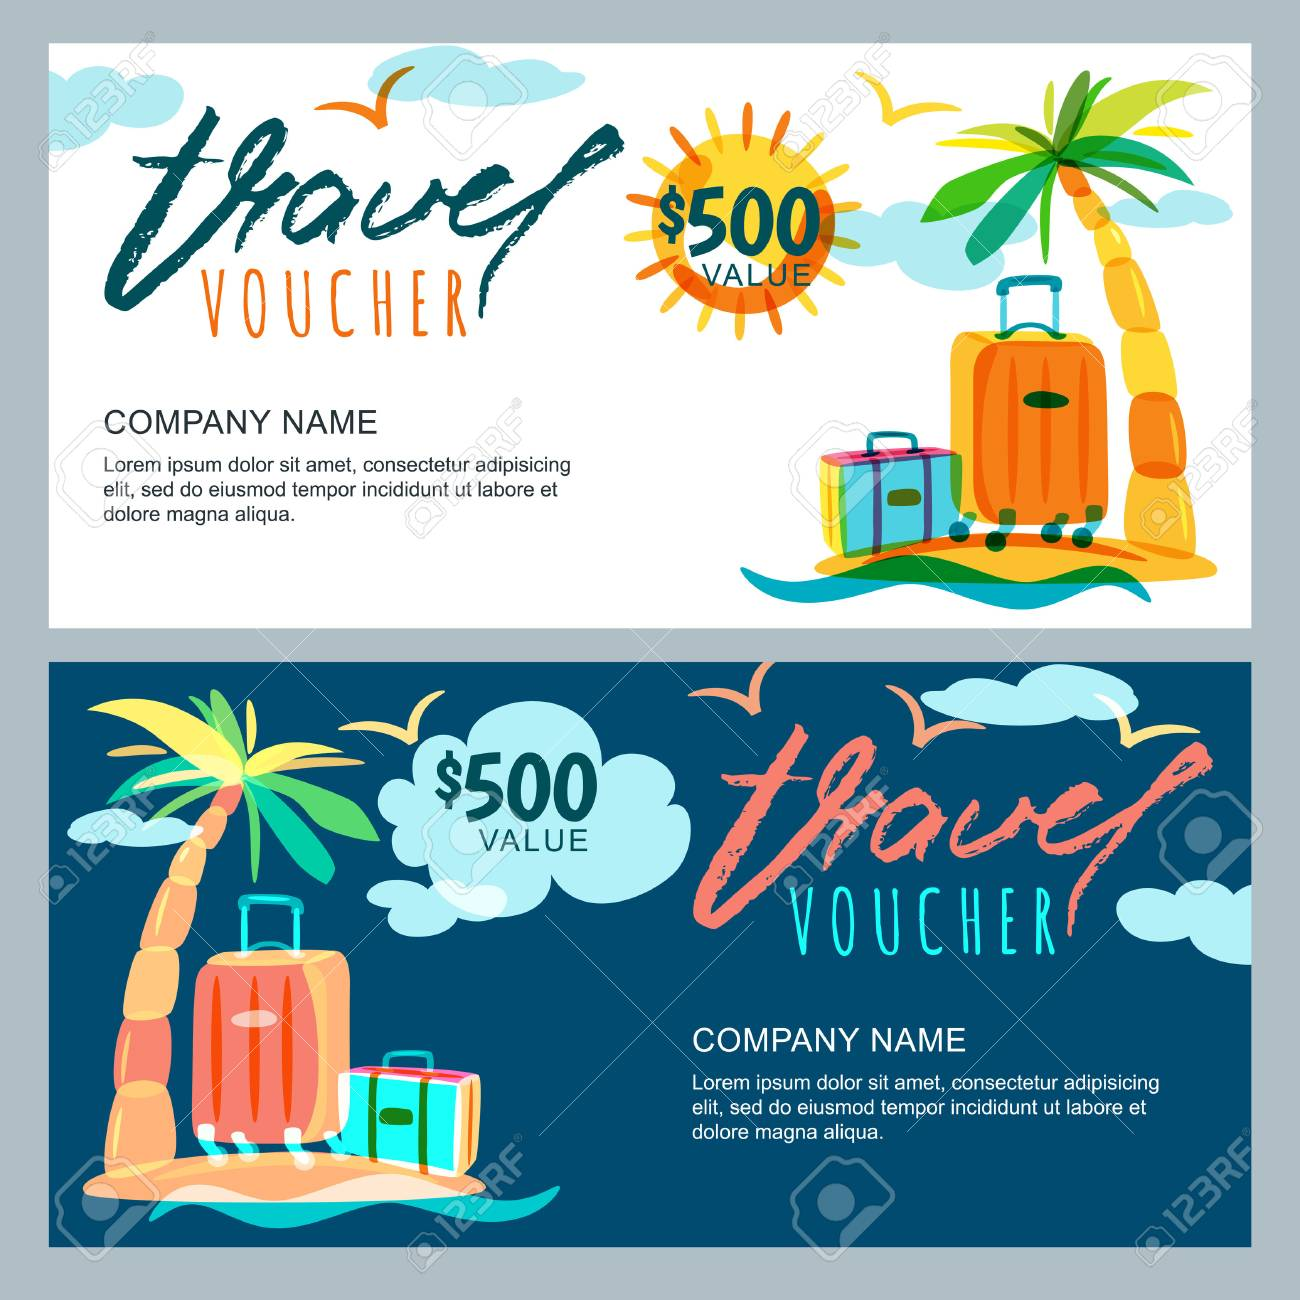 vector vector gift travel voucher template tropical island landscape with palm tree and luggage suitcase concept for summer vacation and travel agency